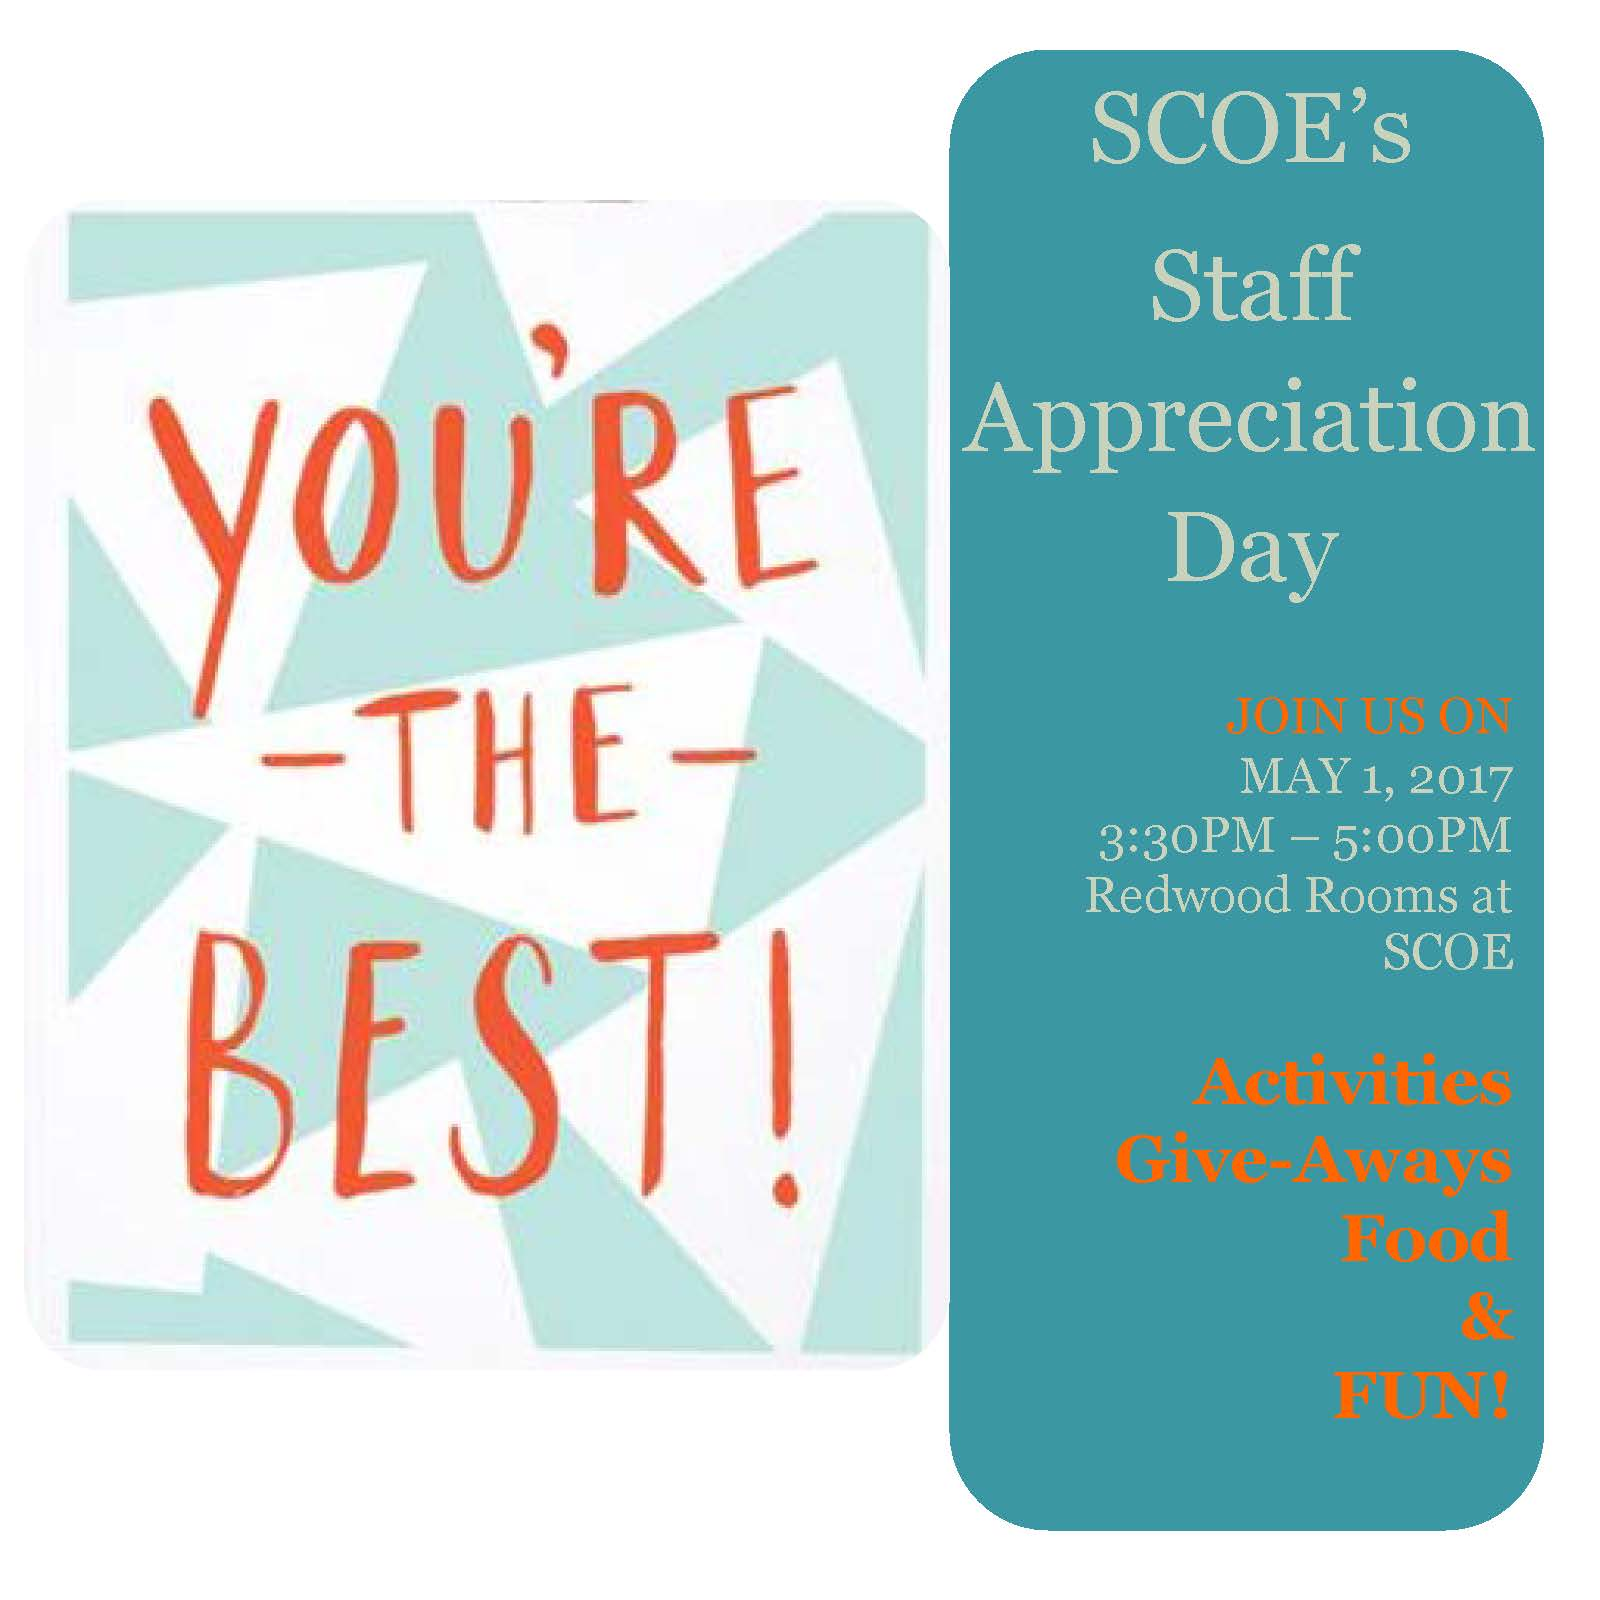 Staff Appreciation Day is May 1